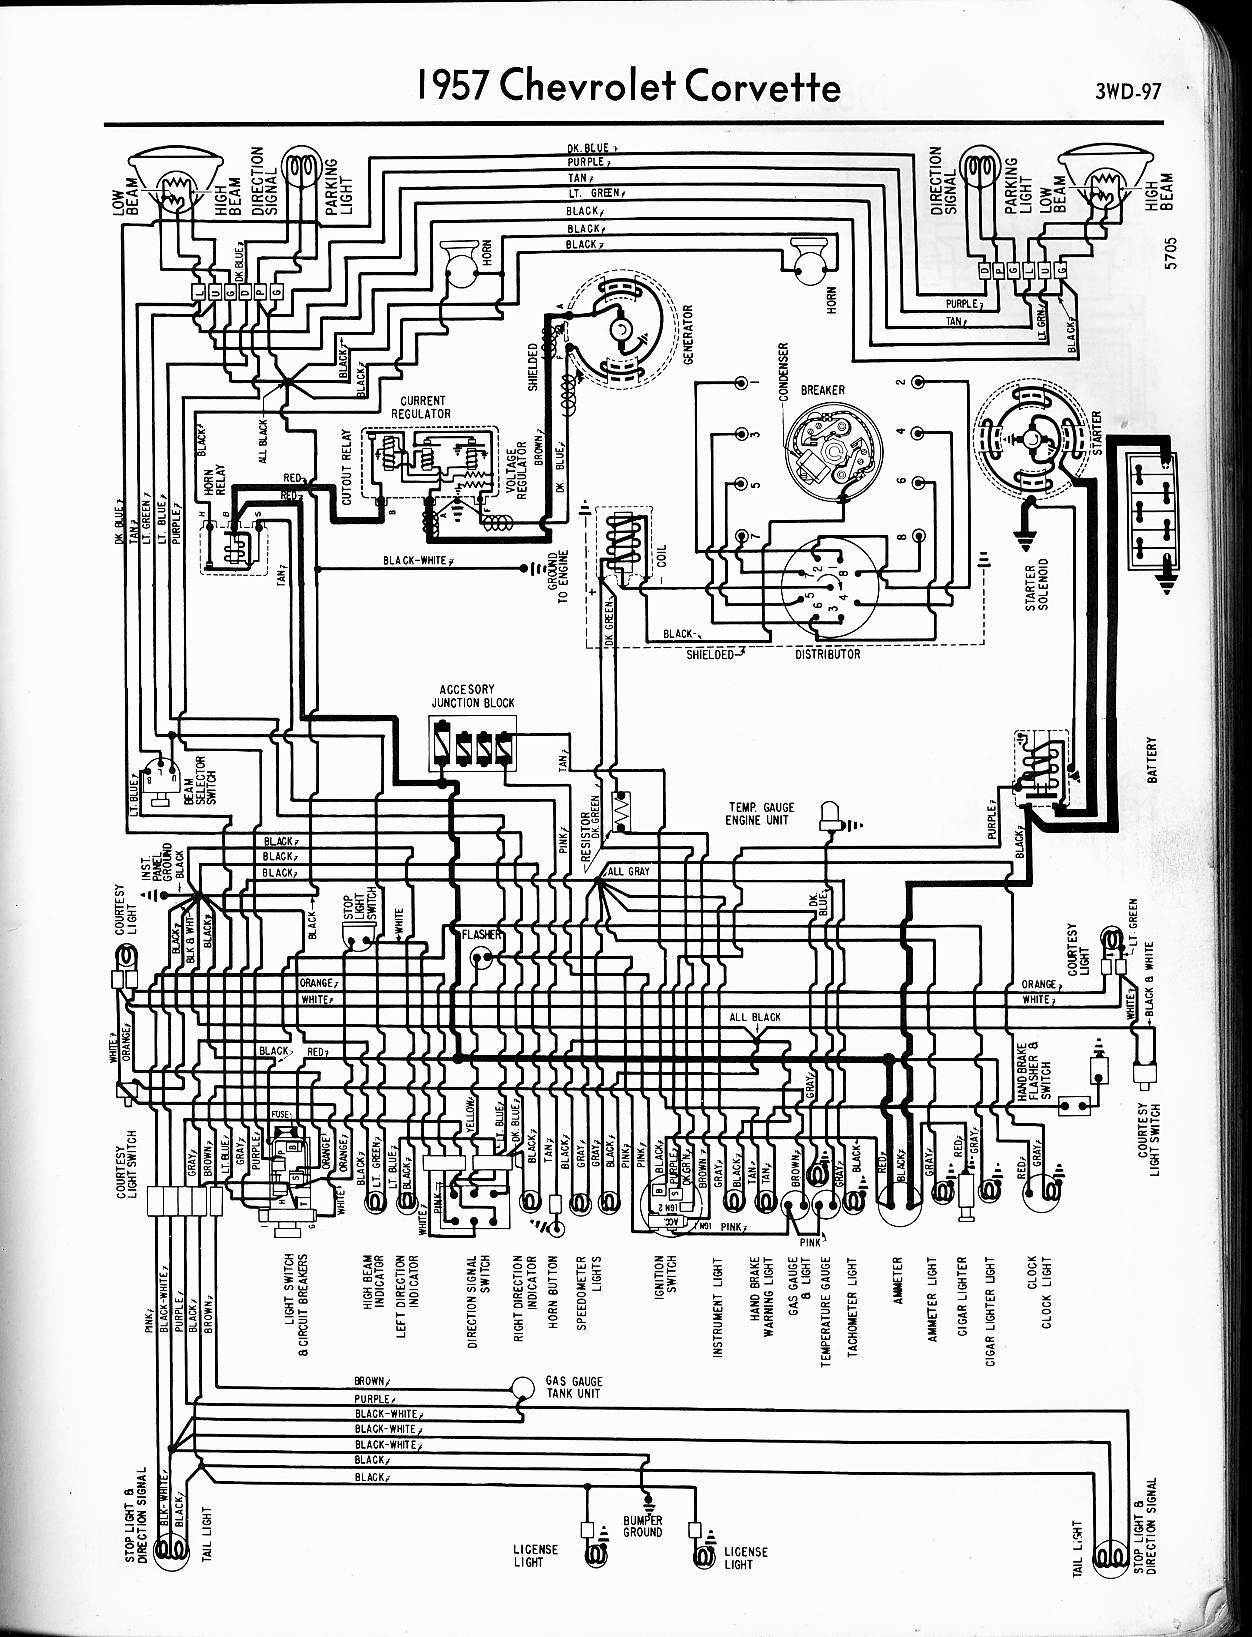 MWireChev57_3WD 097 57 65 chevy wiring diagrams 58 corvette wiring diagram at soozxer.org